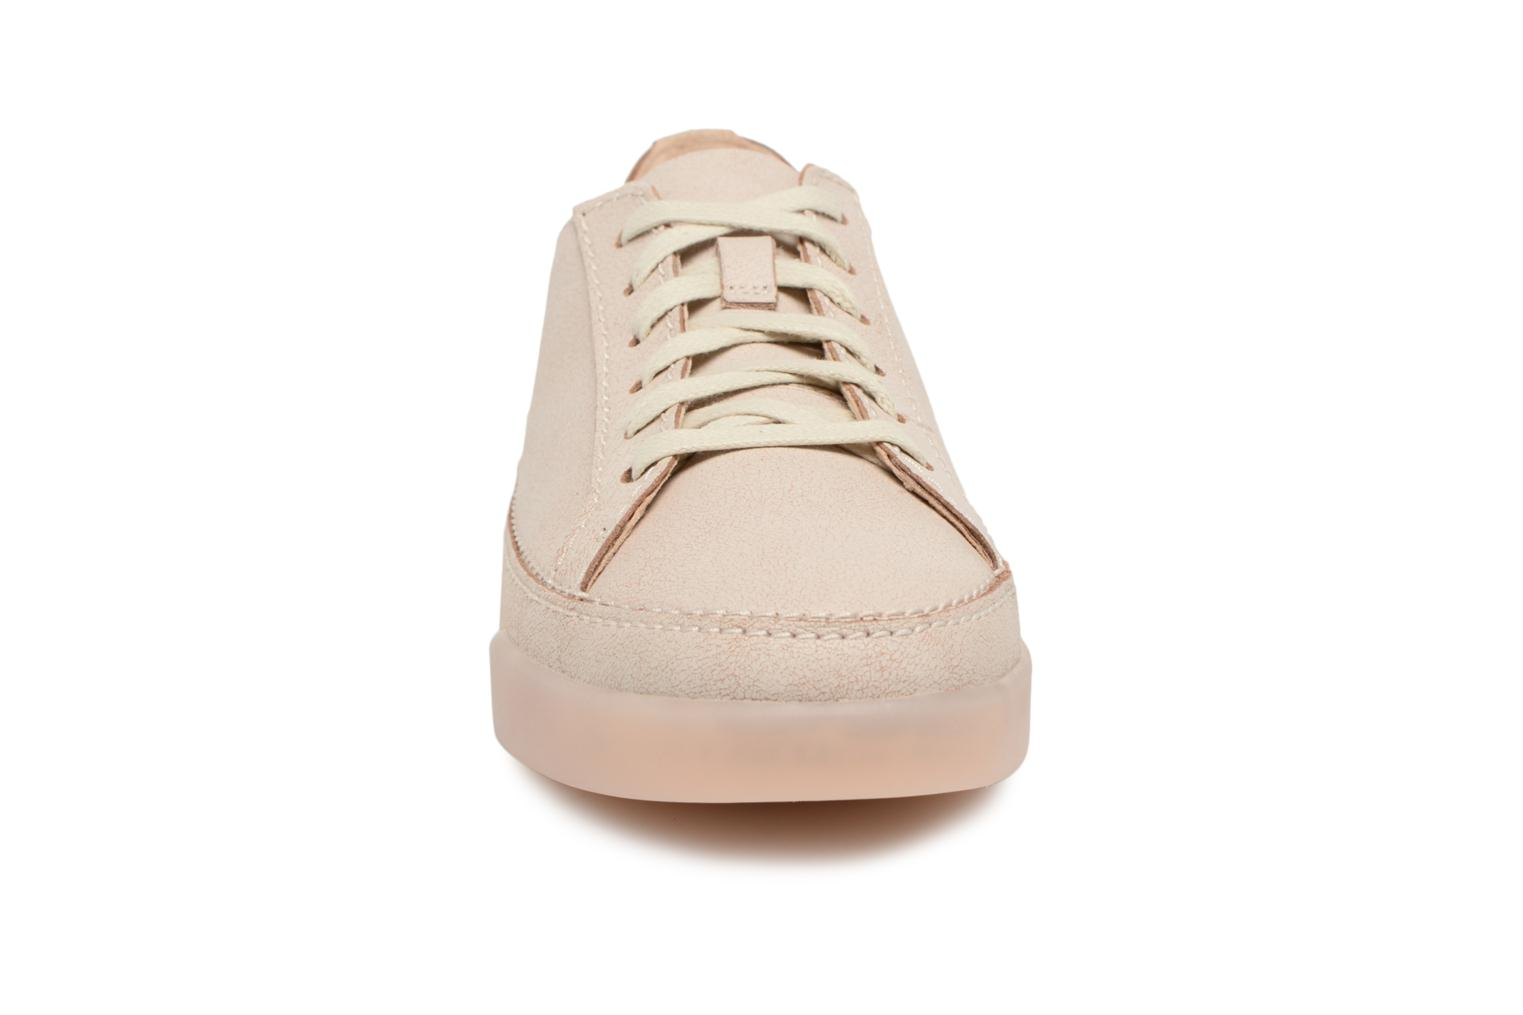 Hidi Holly White leather